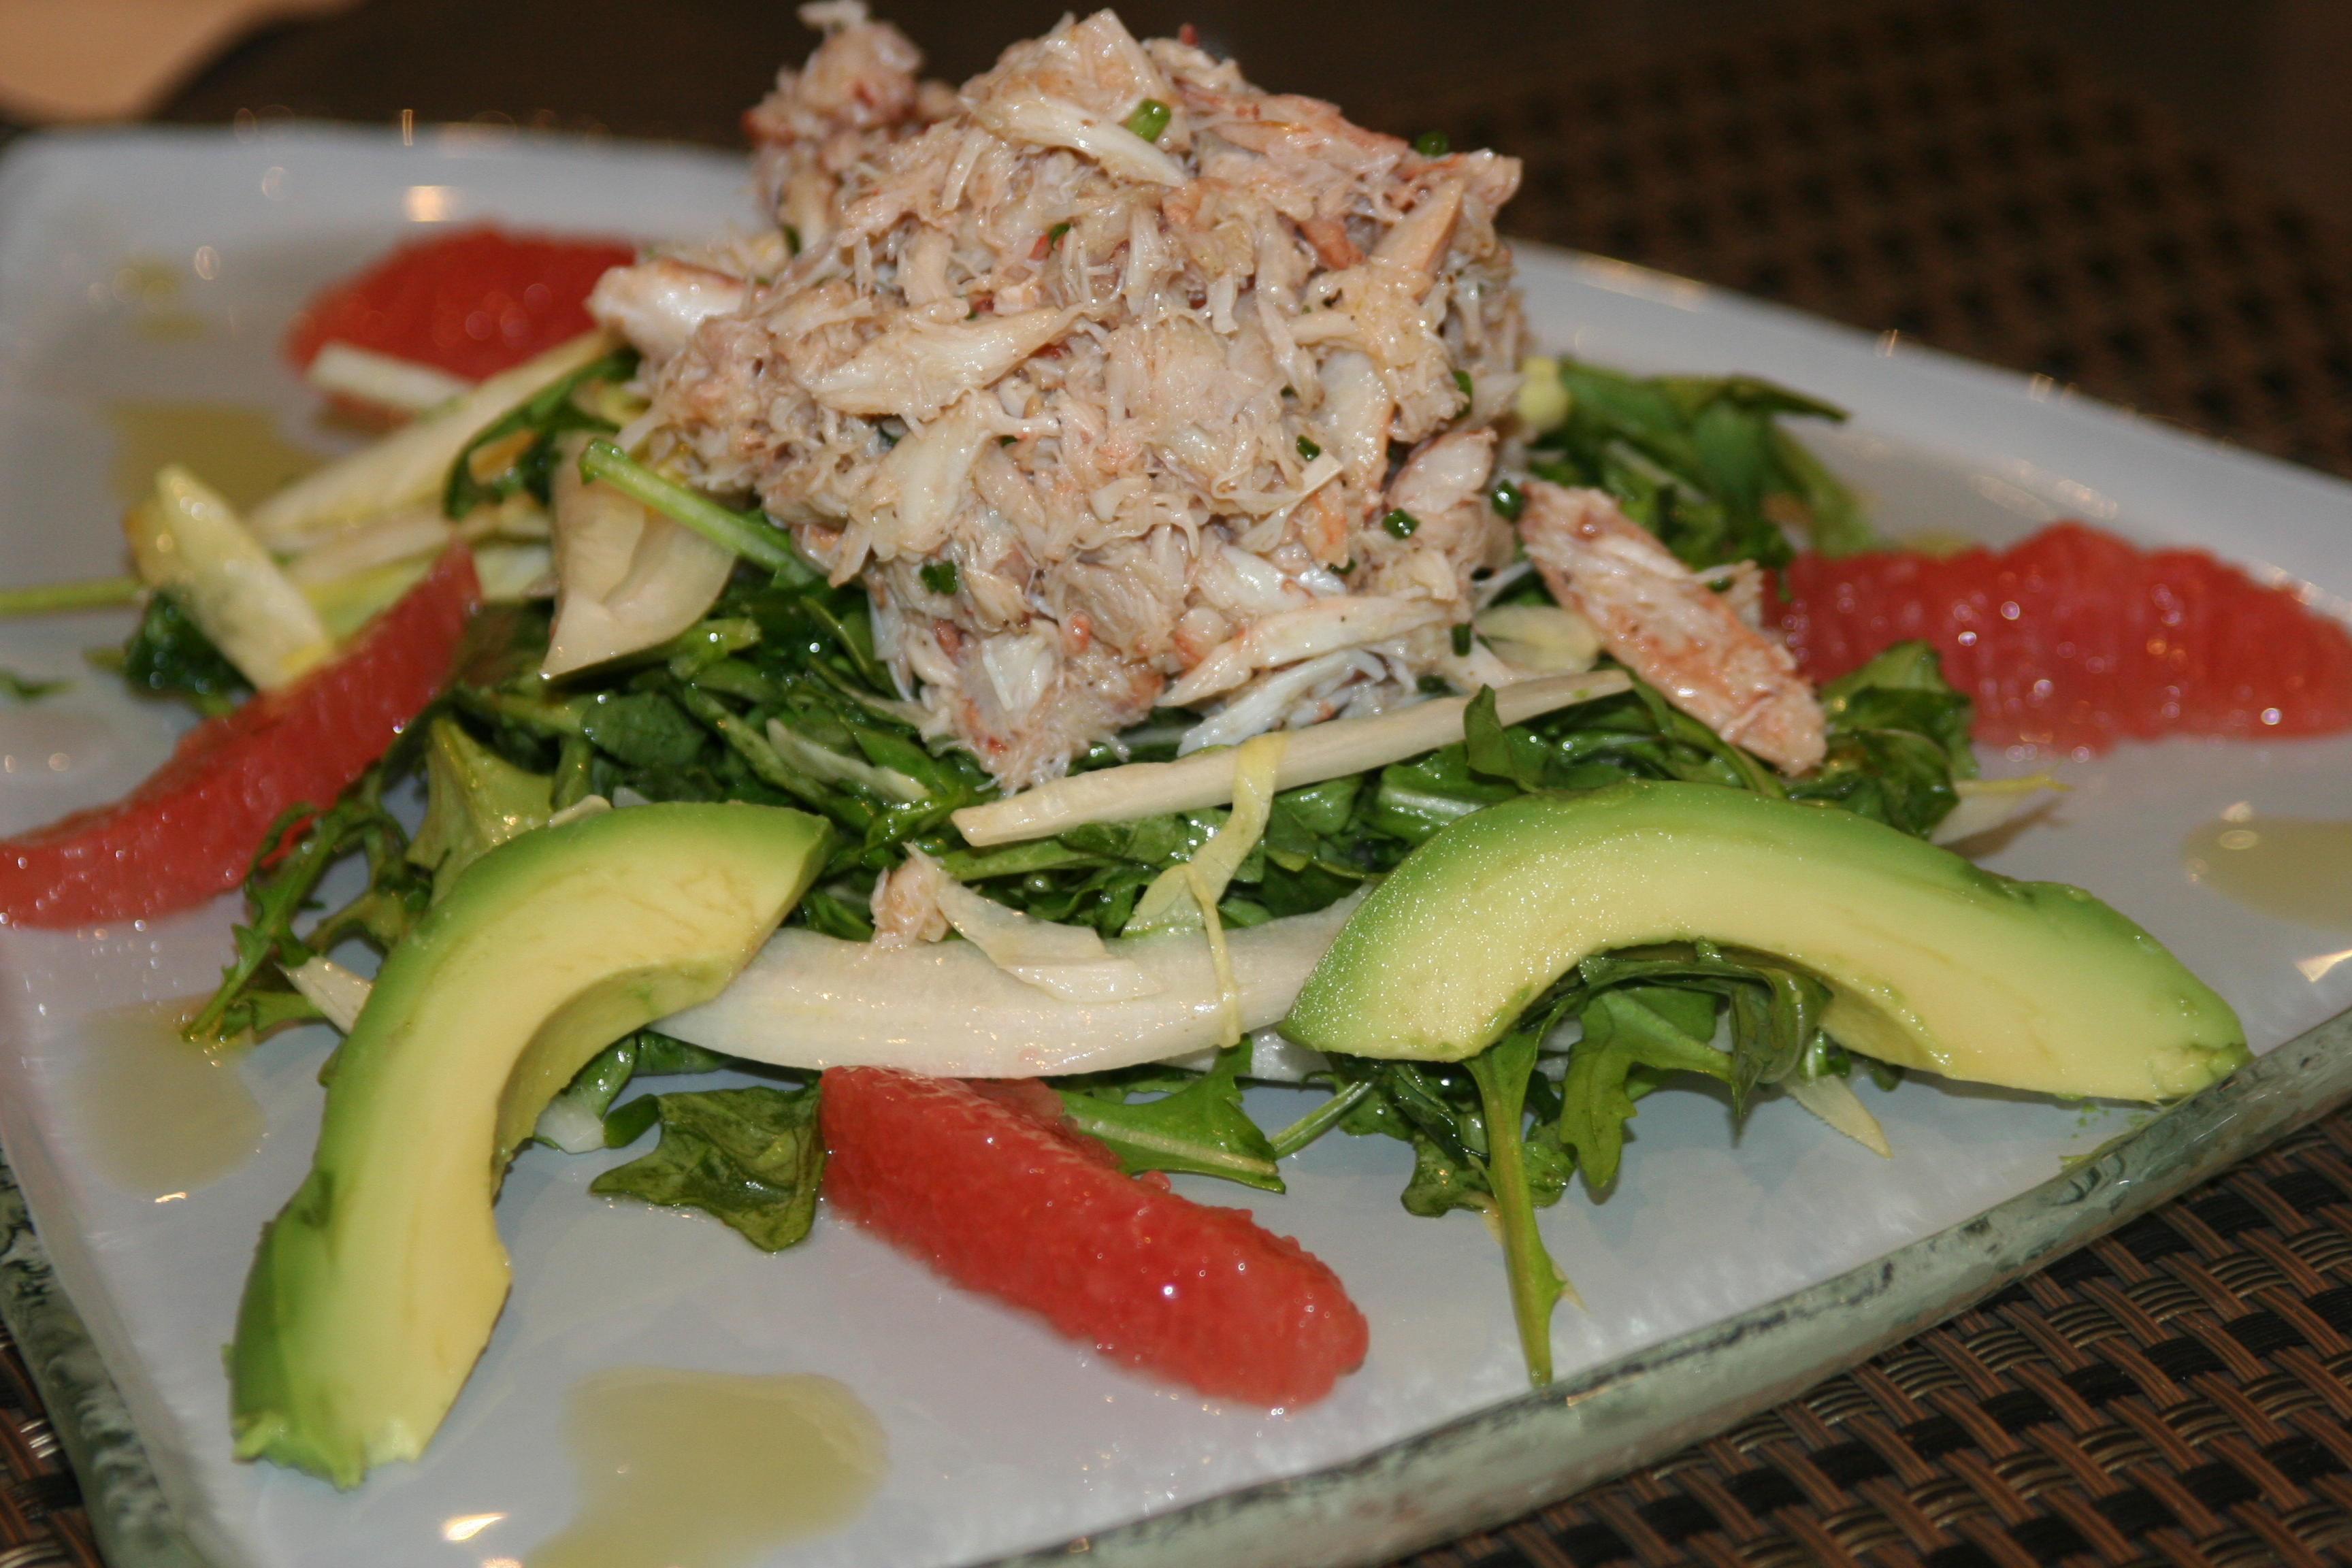 File:Crab and avocado salad.jpg